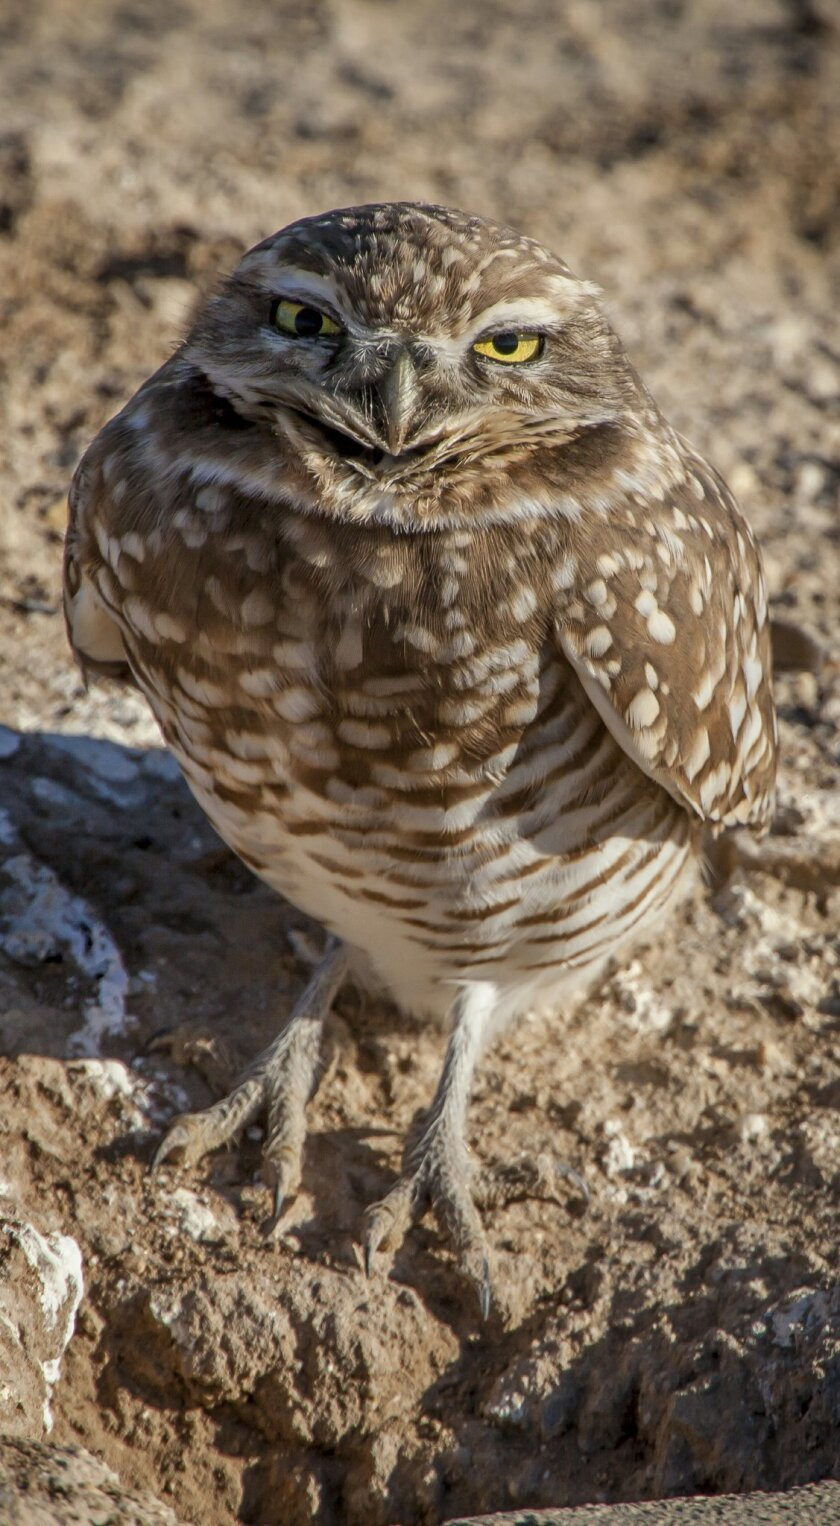 One of the popular resident birds at the Sonny Bono Salton Sea Wildlife Refuge is the burrowing owl.